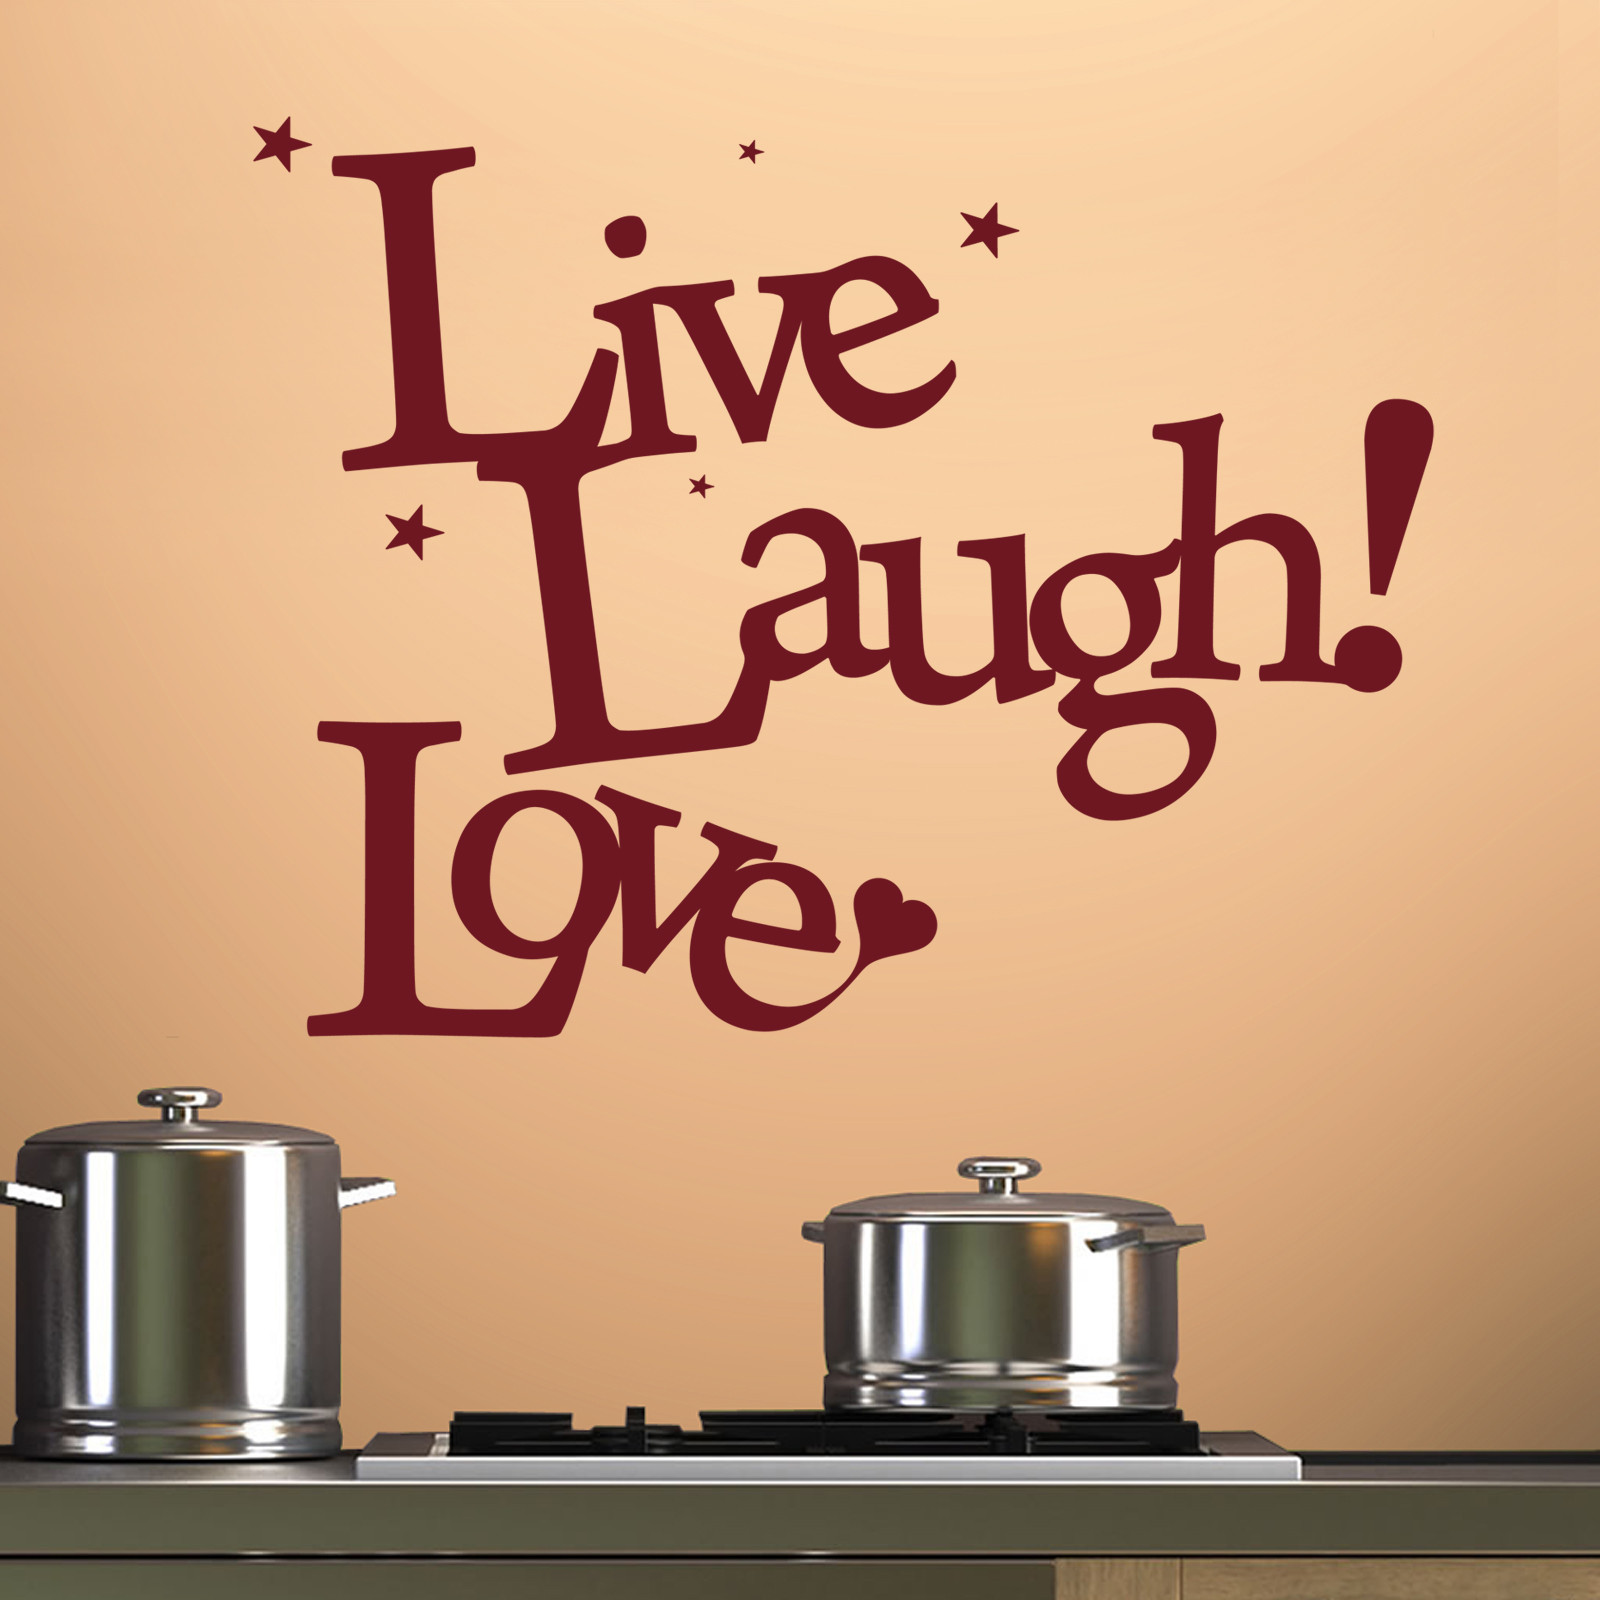 Best ideas about Live Laugh Love Kitchen Decor . Save or Pin Live Laugh Love v3 Wall Stickers & Decals Now.